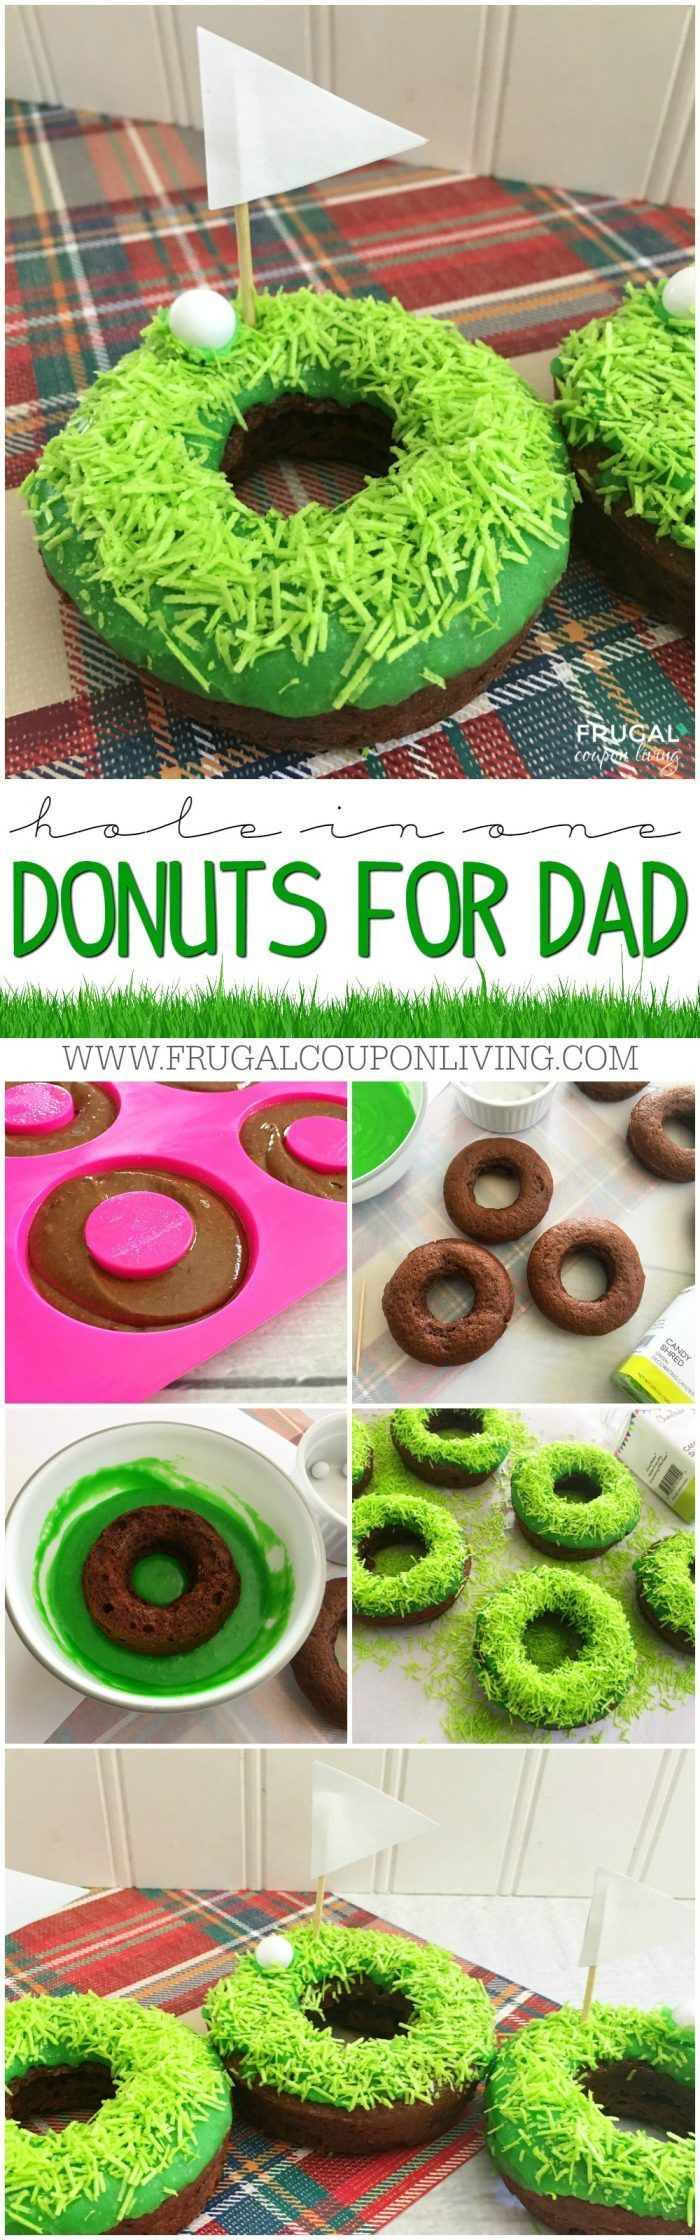 We love these Golf Donuts for Dad! We made an easy Father's Day Dessert that is creative and fun and personalized just for dad! It's a hole in one!